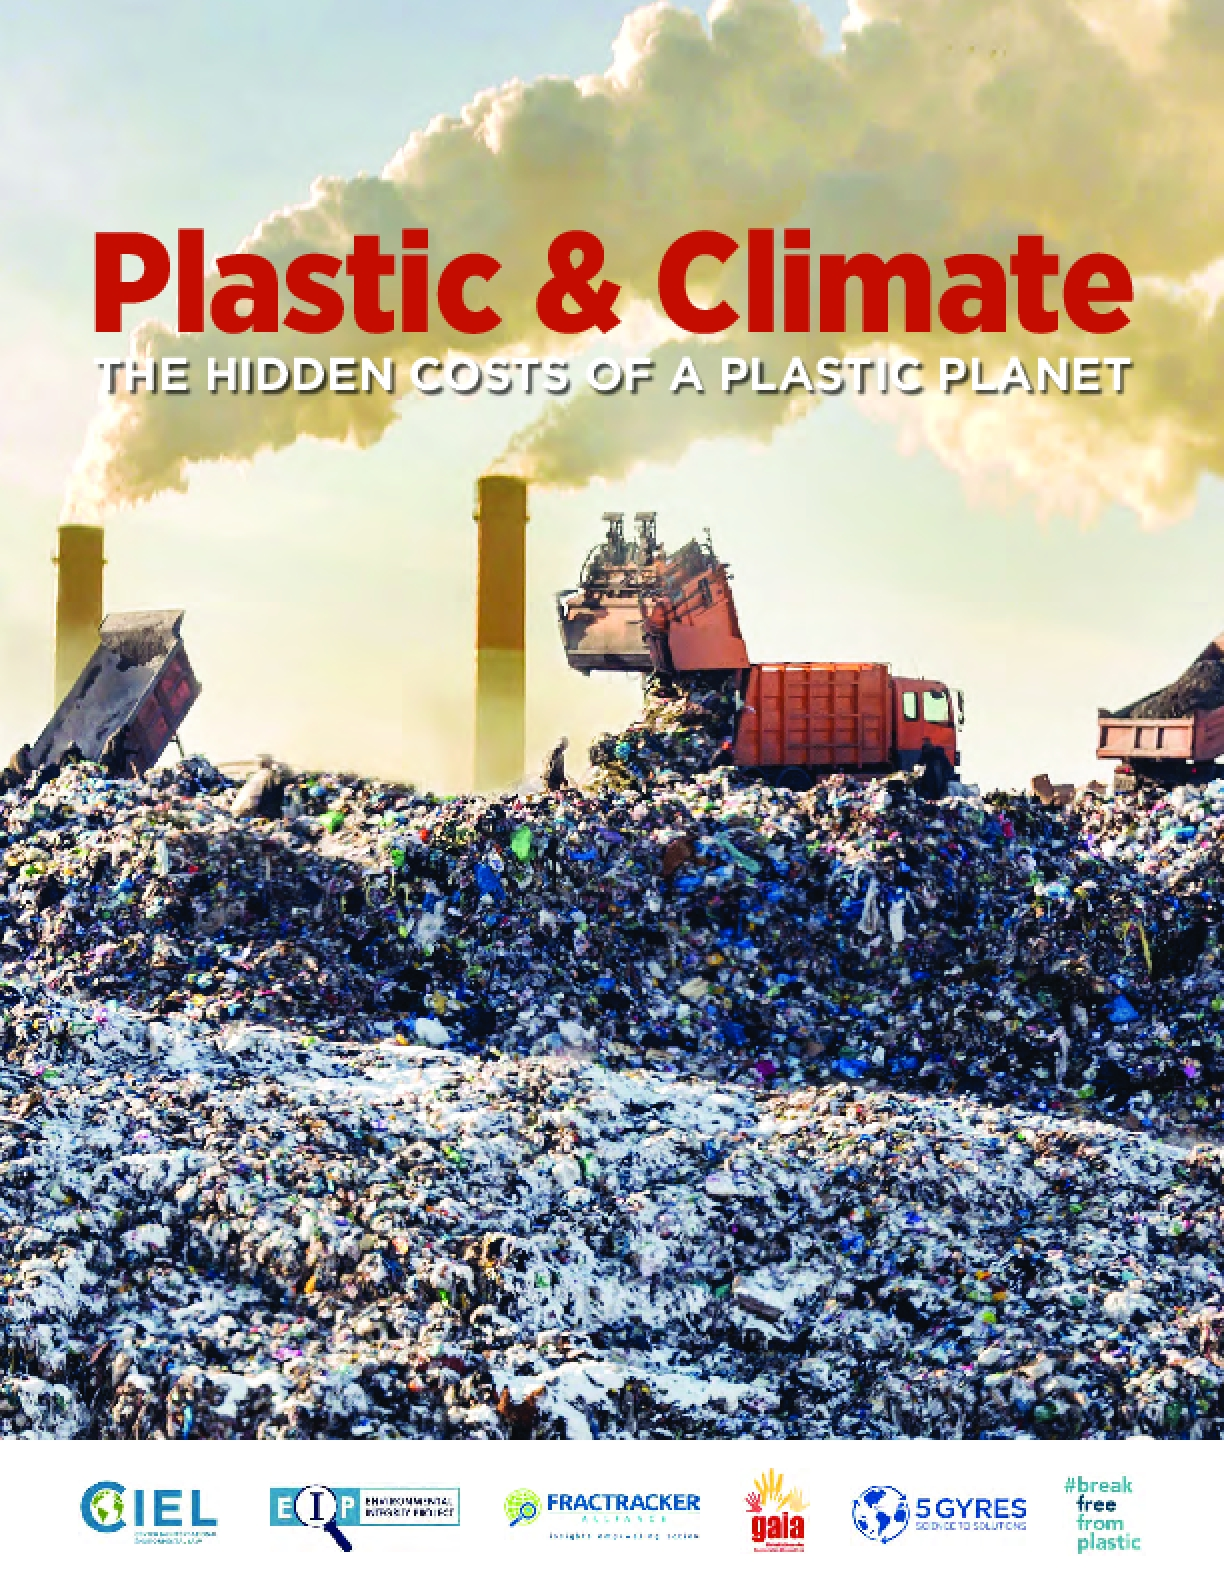 Plastic & Climate: The Hidden Costs of a Plastic Planet